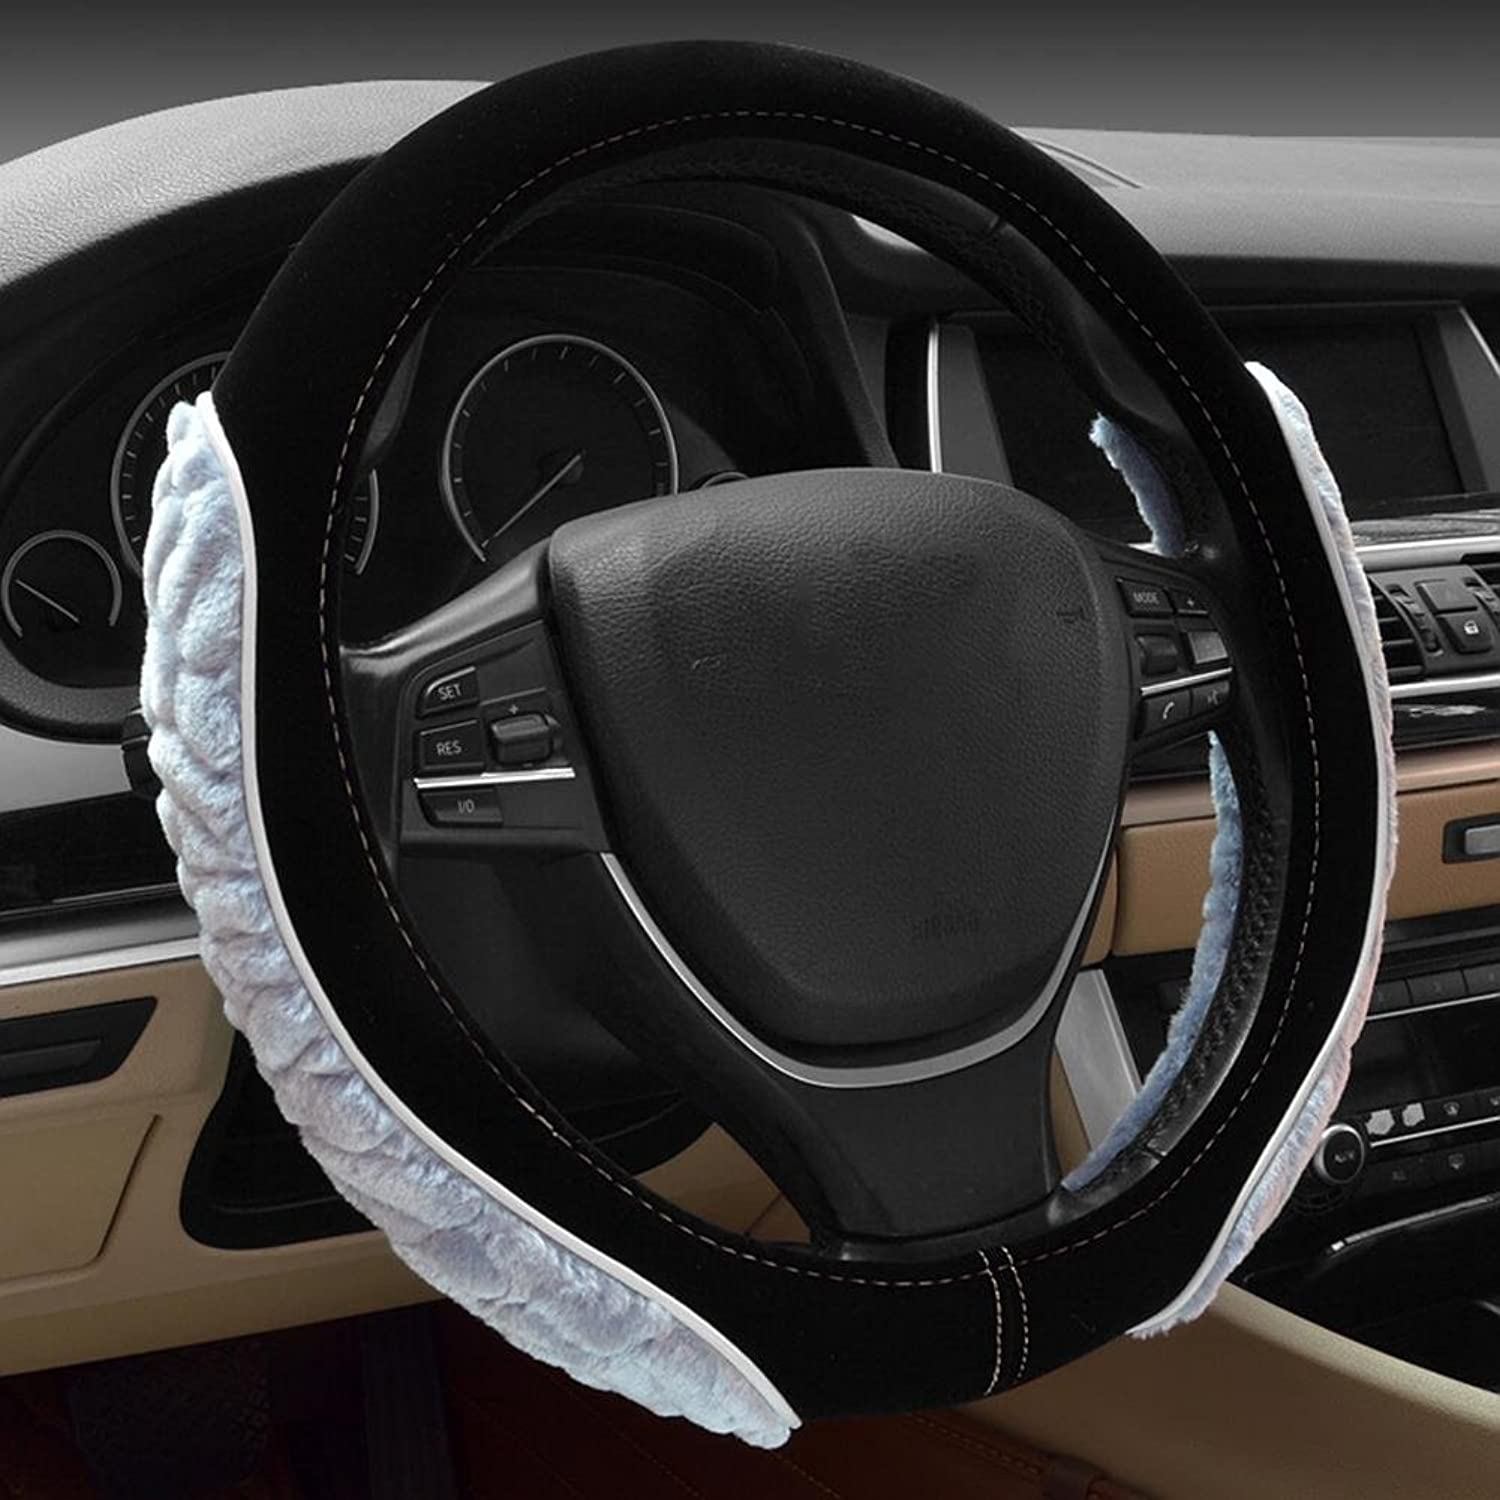 Auto Accessories 2018 Car Steering Wheel Cover 3D Plush Sports Premium Car Handle, Black White